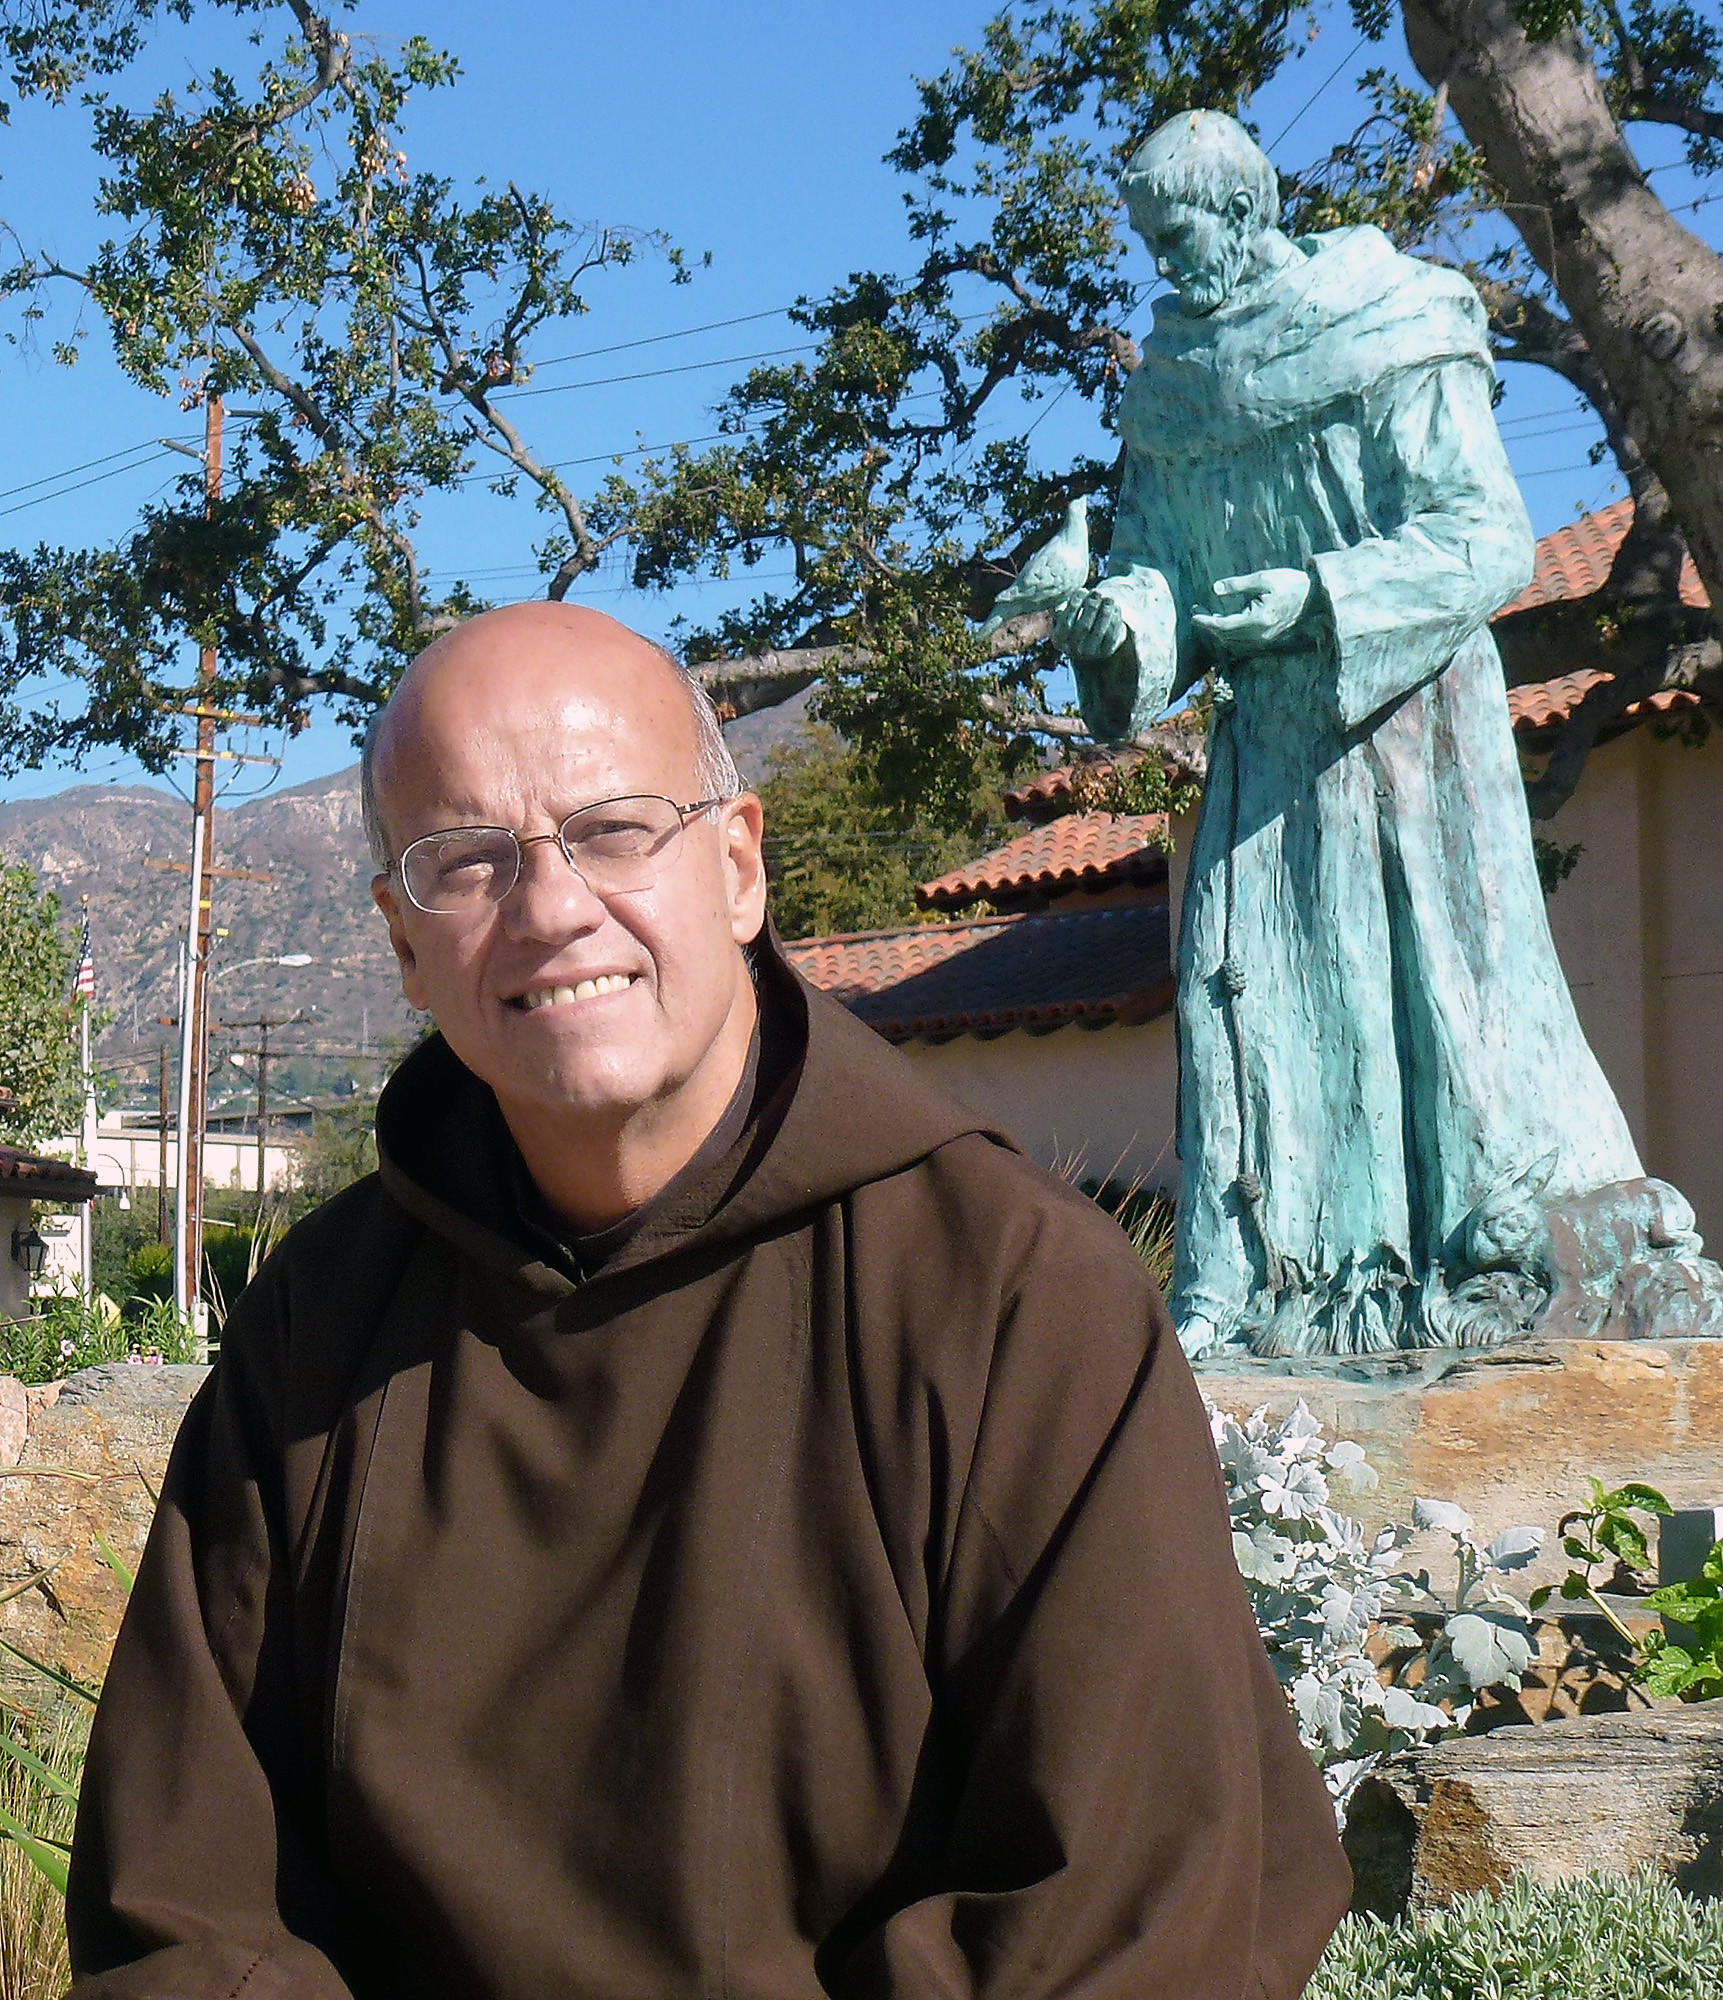 Father Tony Marti, OFM Cap., the president of St. Francis High School, will be honored by the Kiwanis Club of La Cañada at its May 7 Clergy Recognition Day.